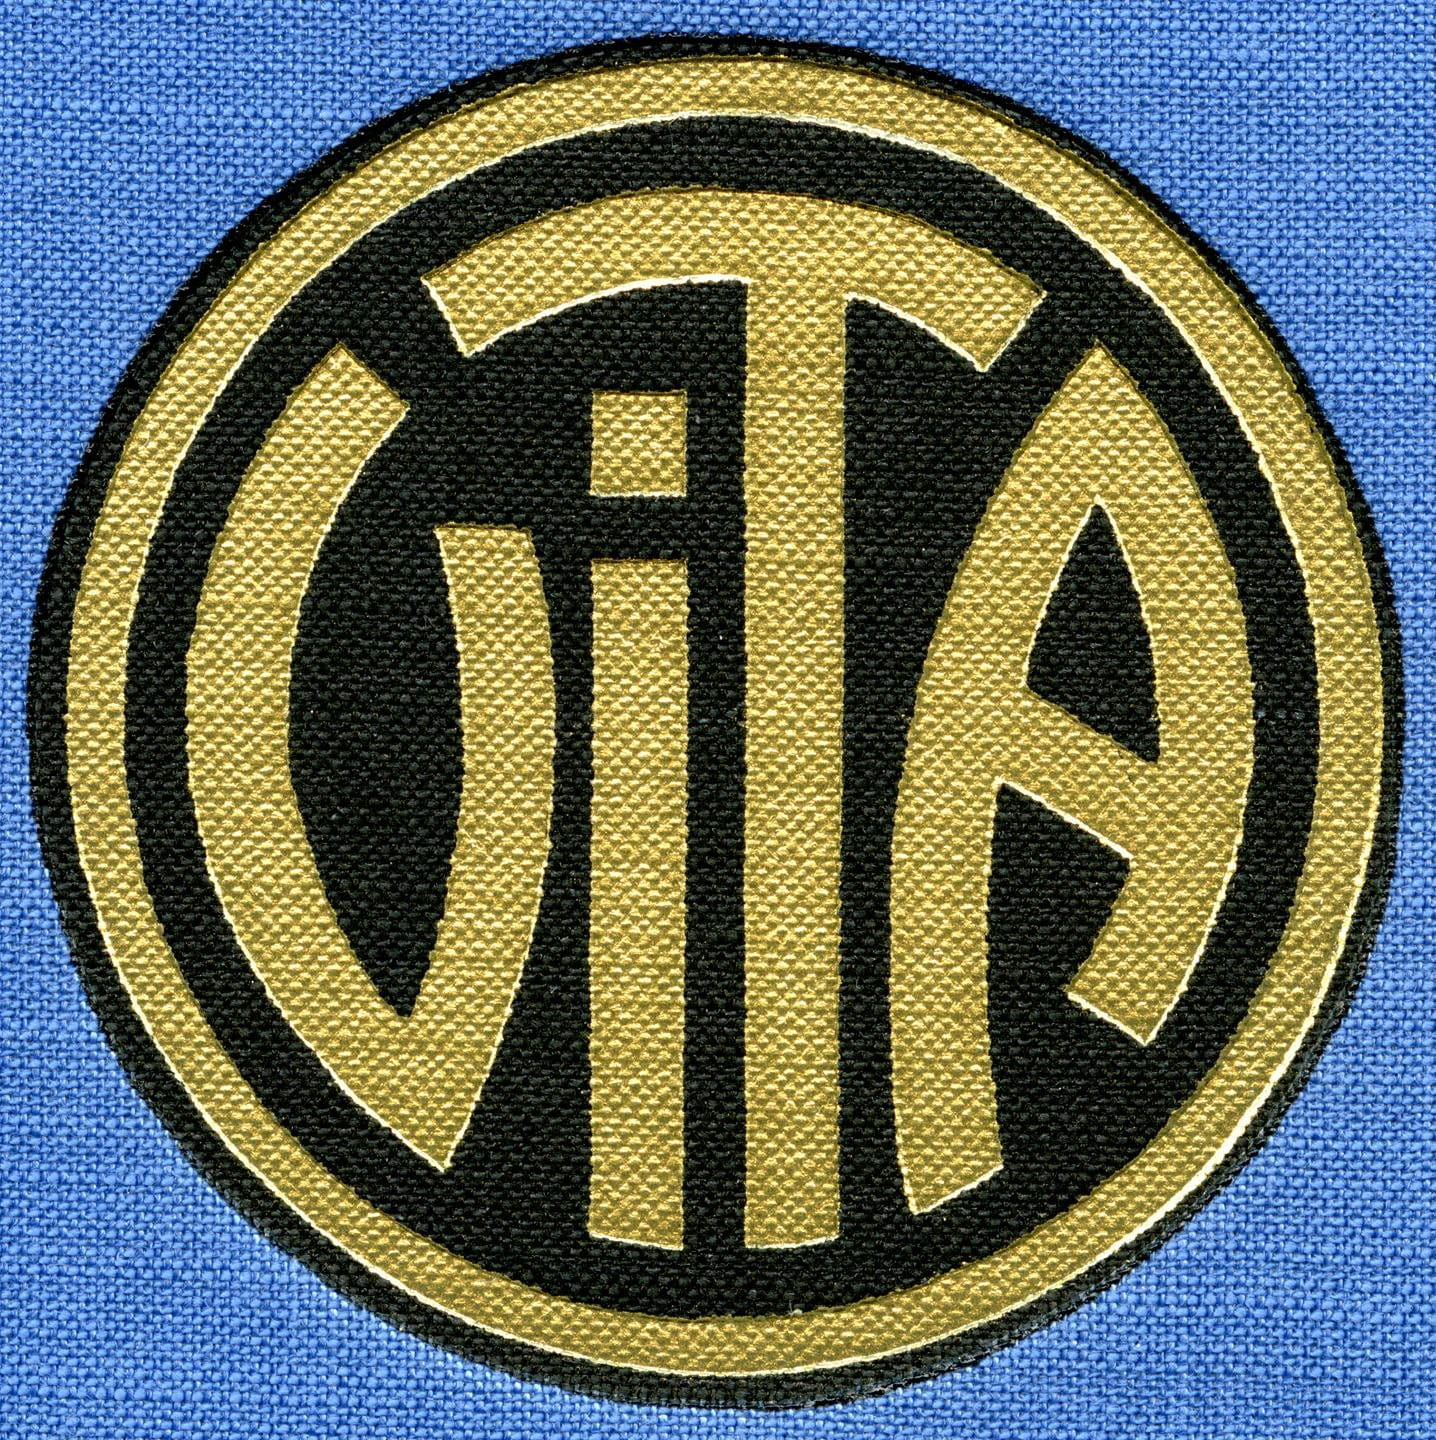 1922: Zurich founds the subsidiary Vita Lebensversicherung AG